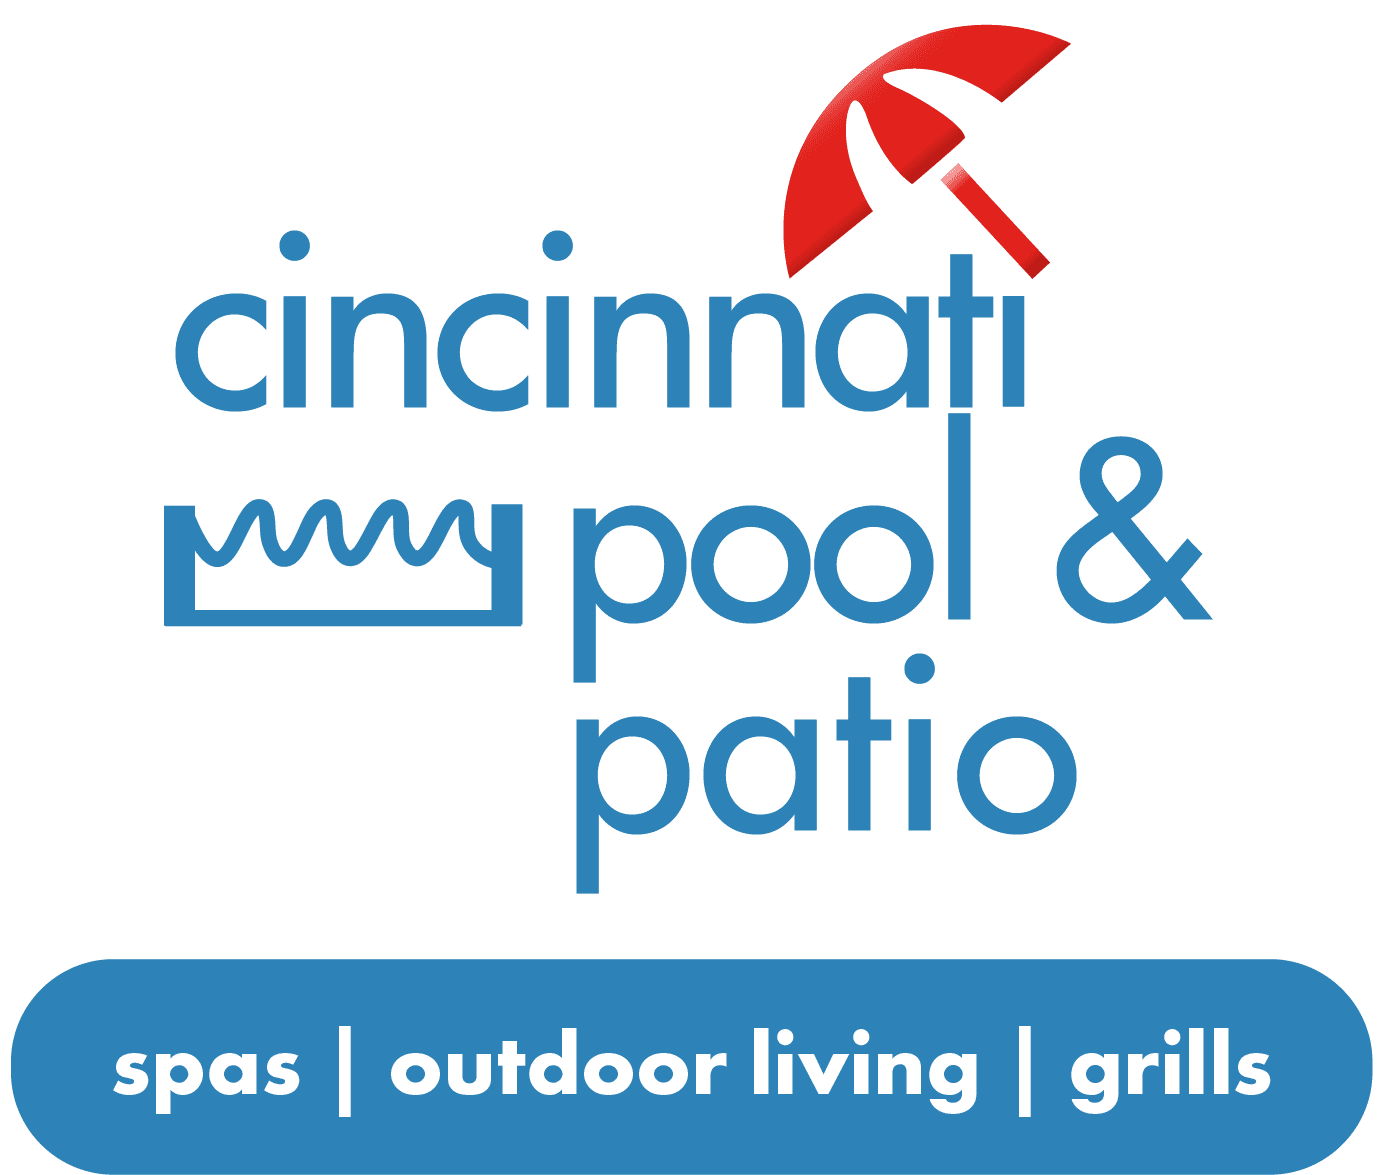 Cincinnati Pool and Patio